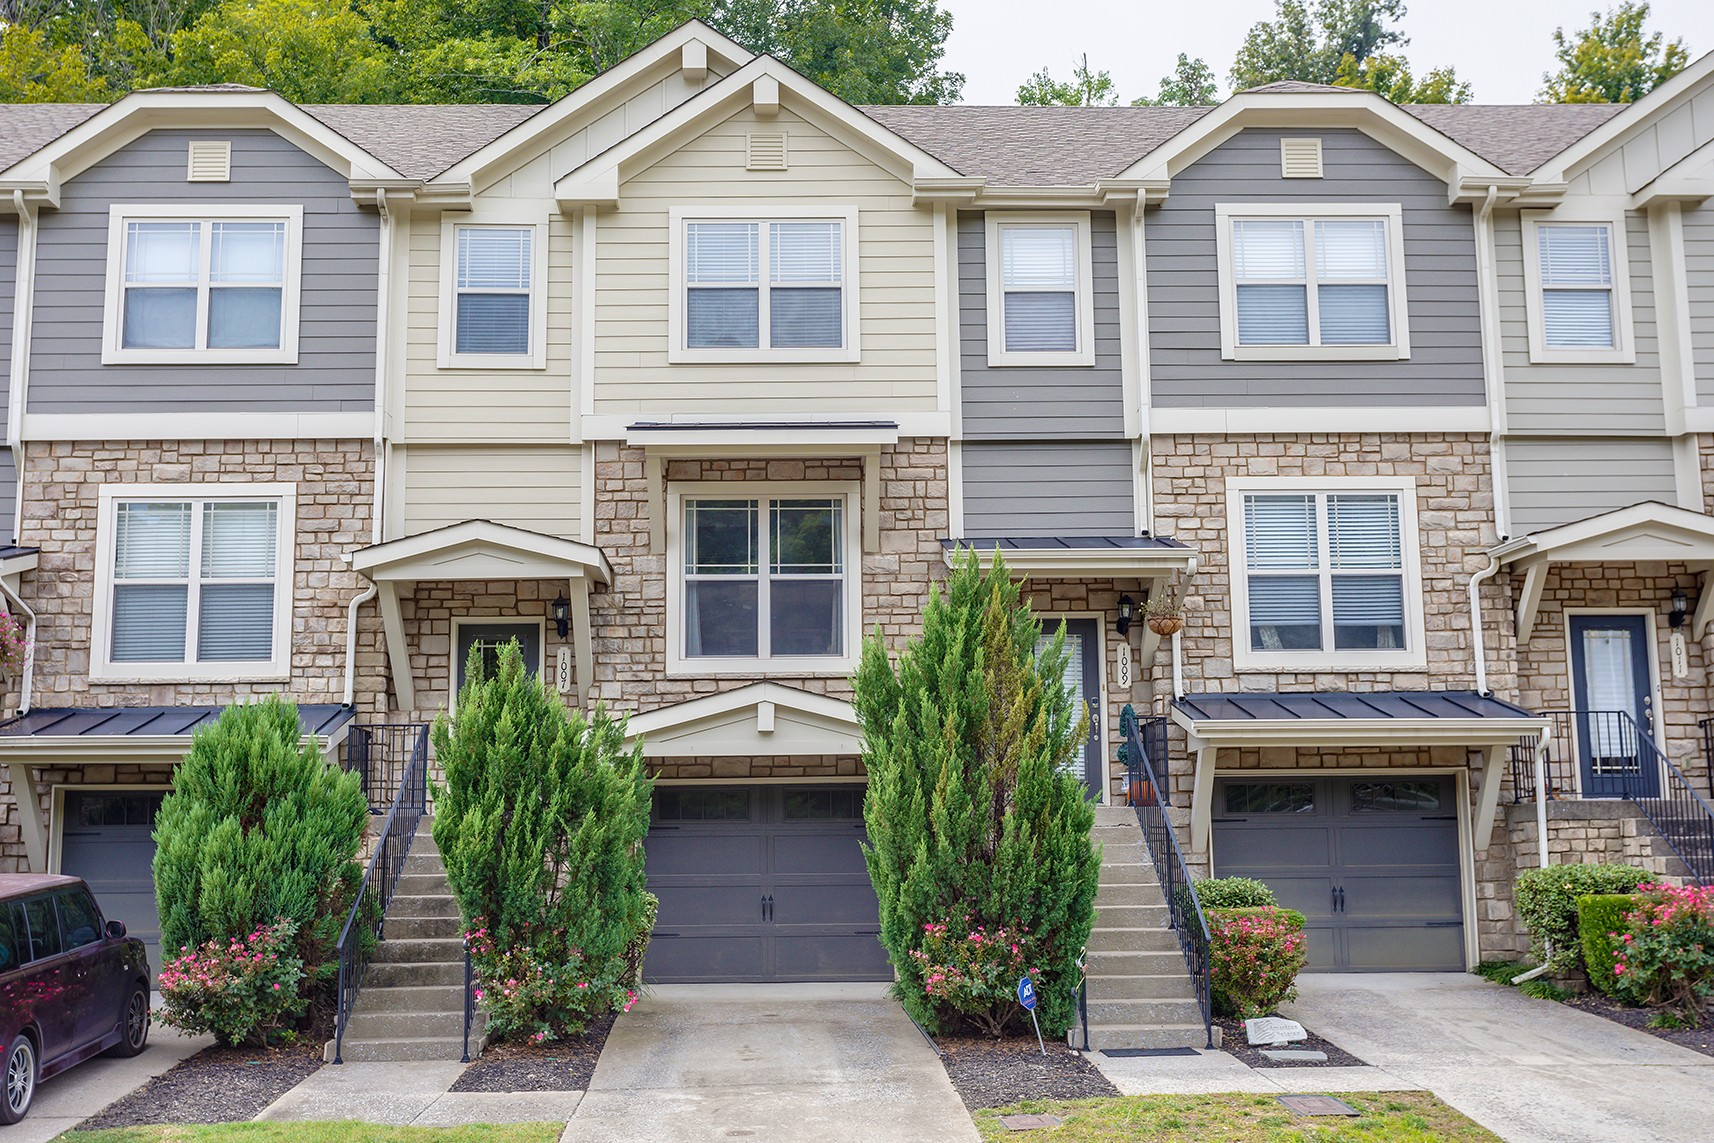 Spacious 3 story townhouse with private patio.  3 bedrooms, 2 full baths, 2 half baths. Open concept Kitchen/dining/living area. Perfect for entertaining.  Finished room in basement could be an amazing home theater. Lots of storage and closet space.